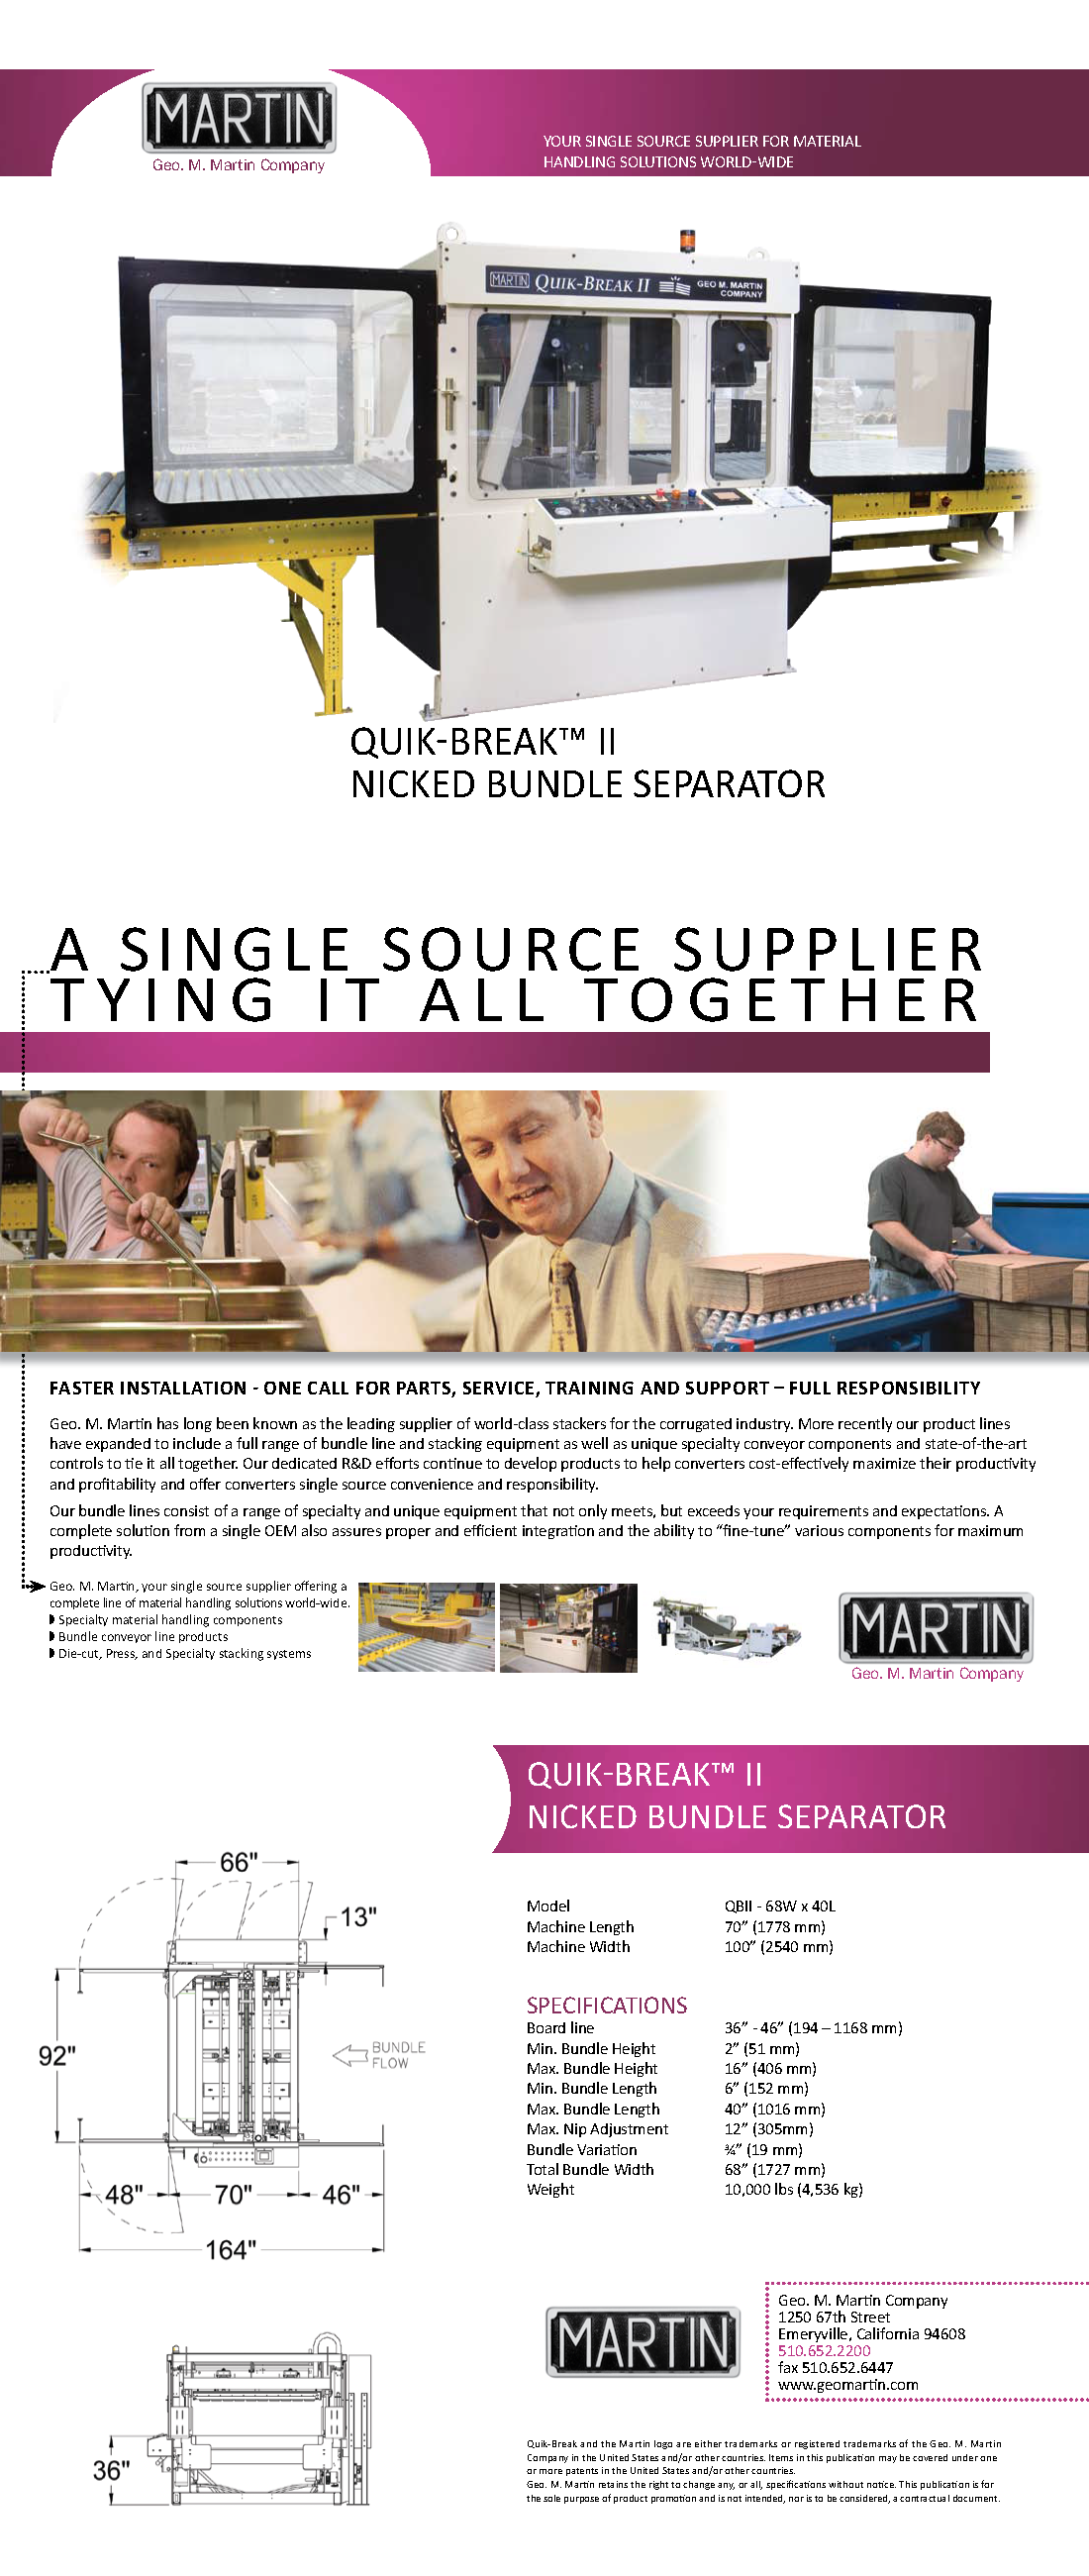 Learn more about the Quik-Break II Nicked Bundle Separator by viewing the Geo. M. Martin brochure.